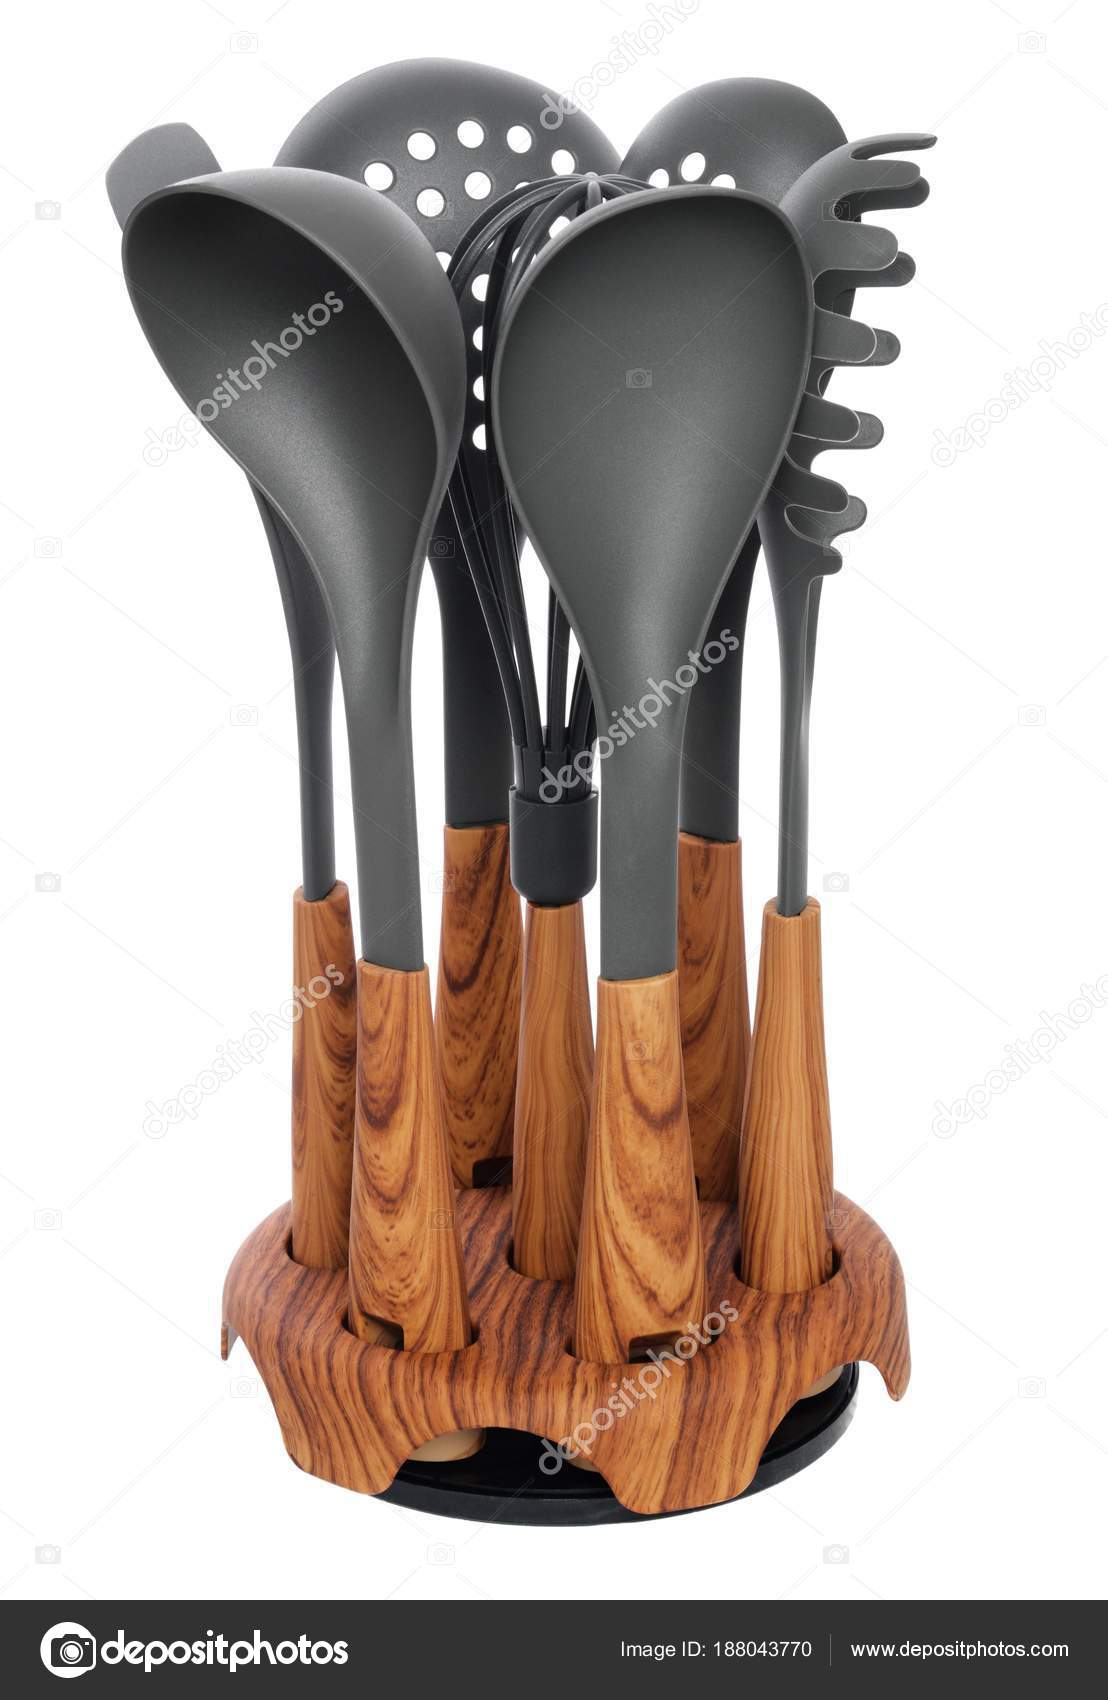 Plastic Kitchen Utensils With Wooden Handle Isolated On White. S U2014 Stock  Photo